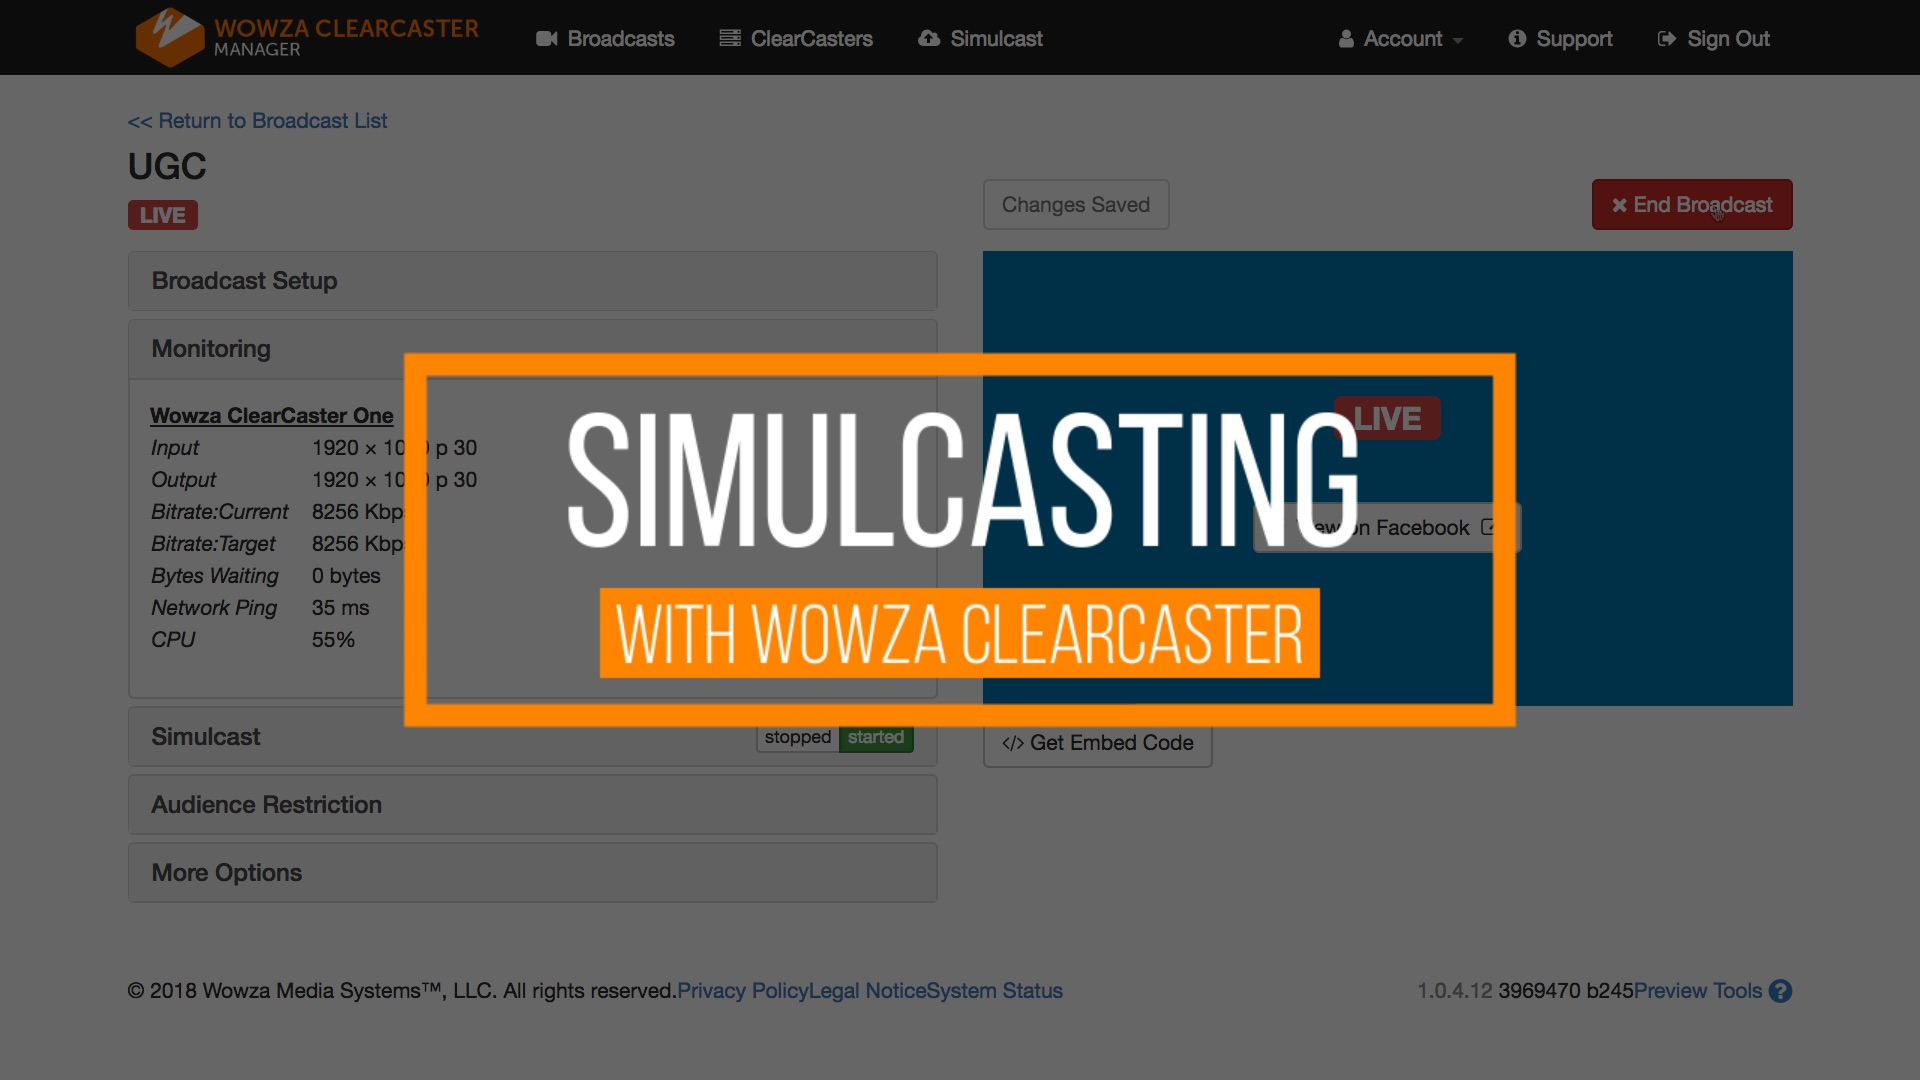 Simulcast a Wowza ClearCaster Facebook mode broadcast